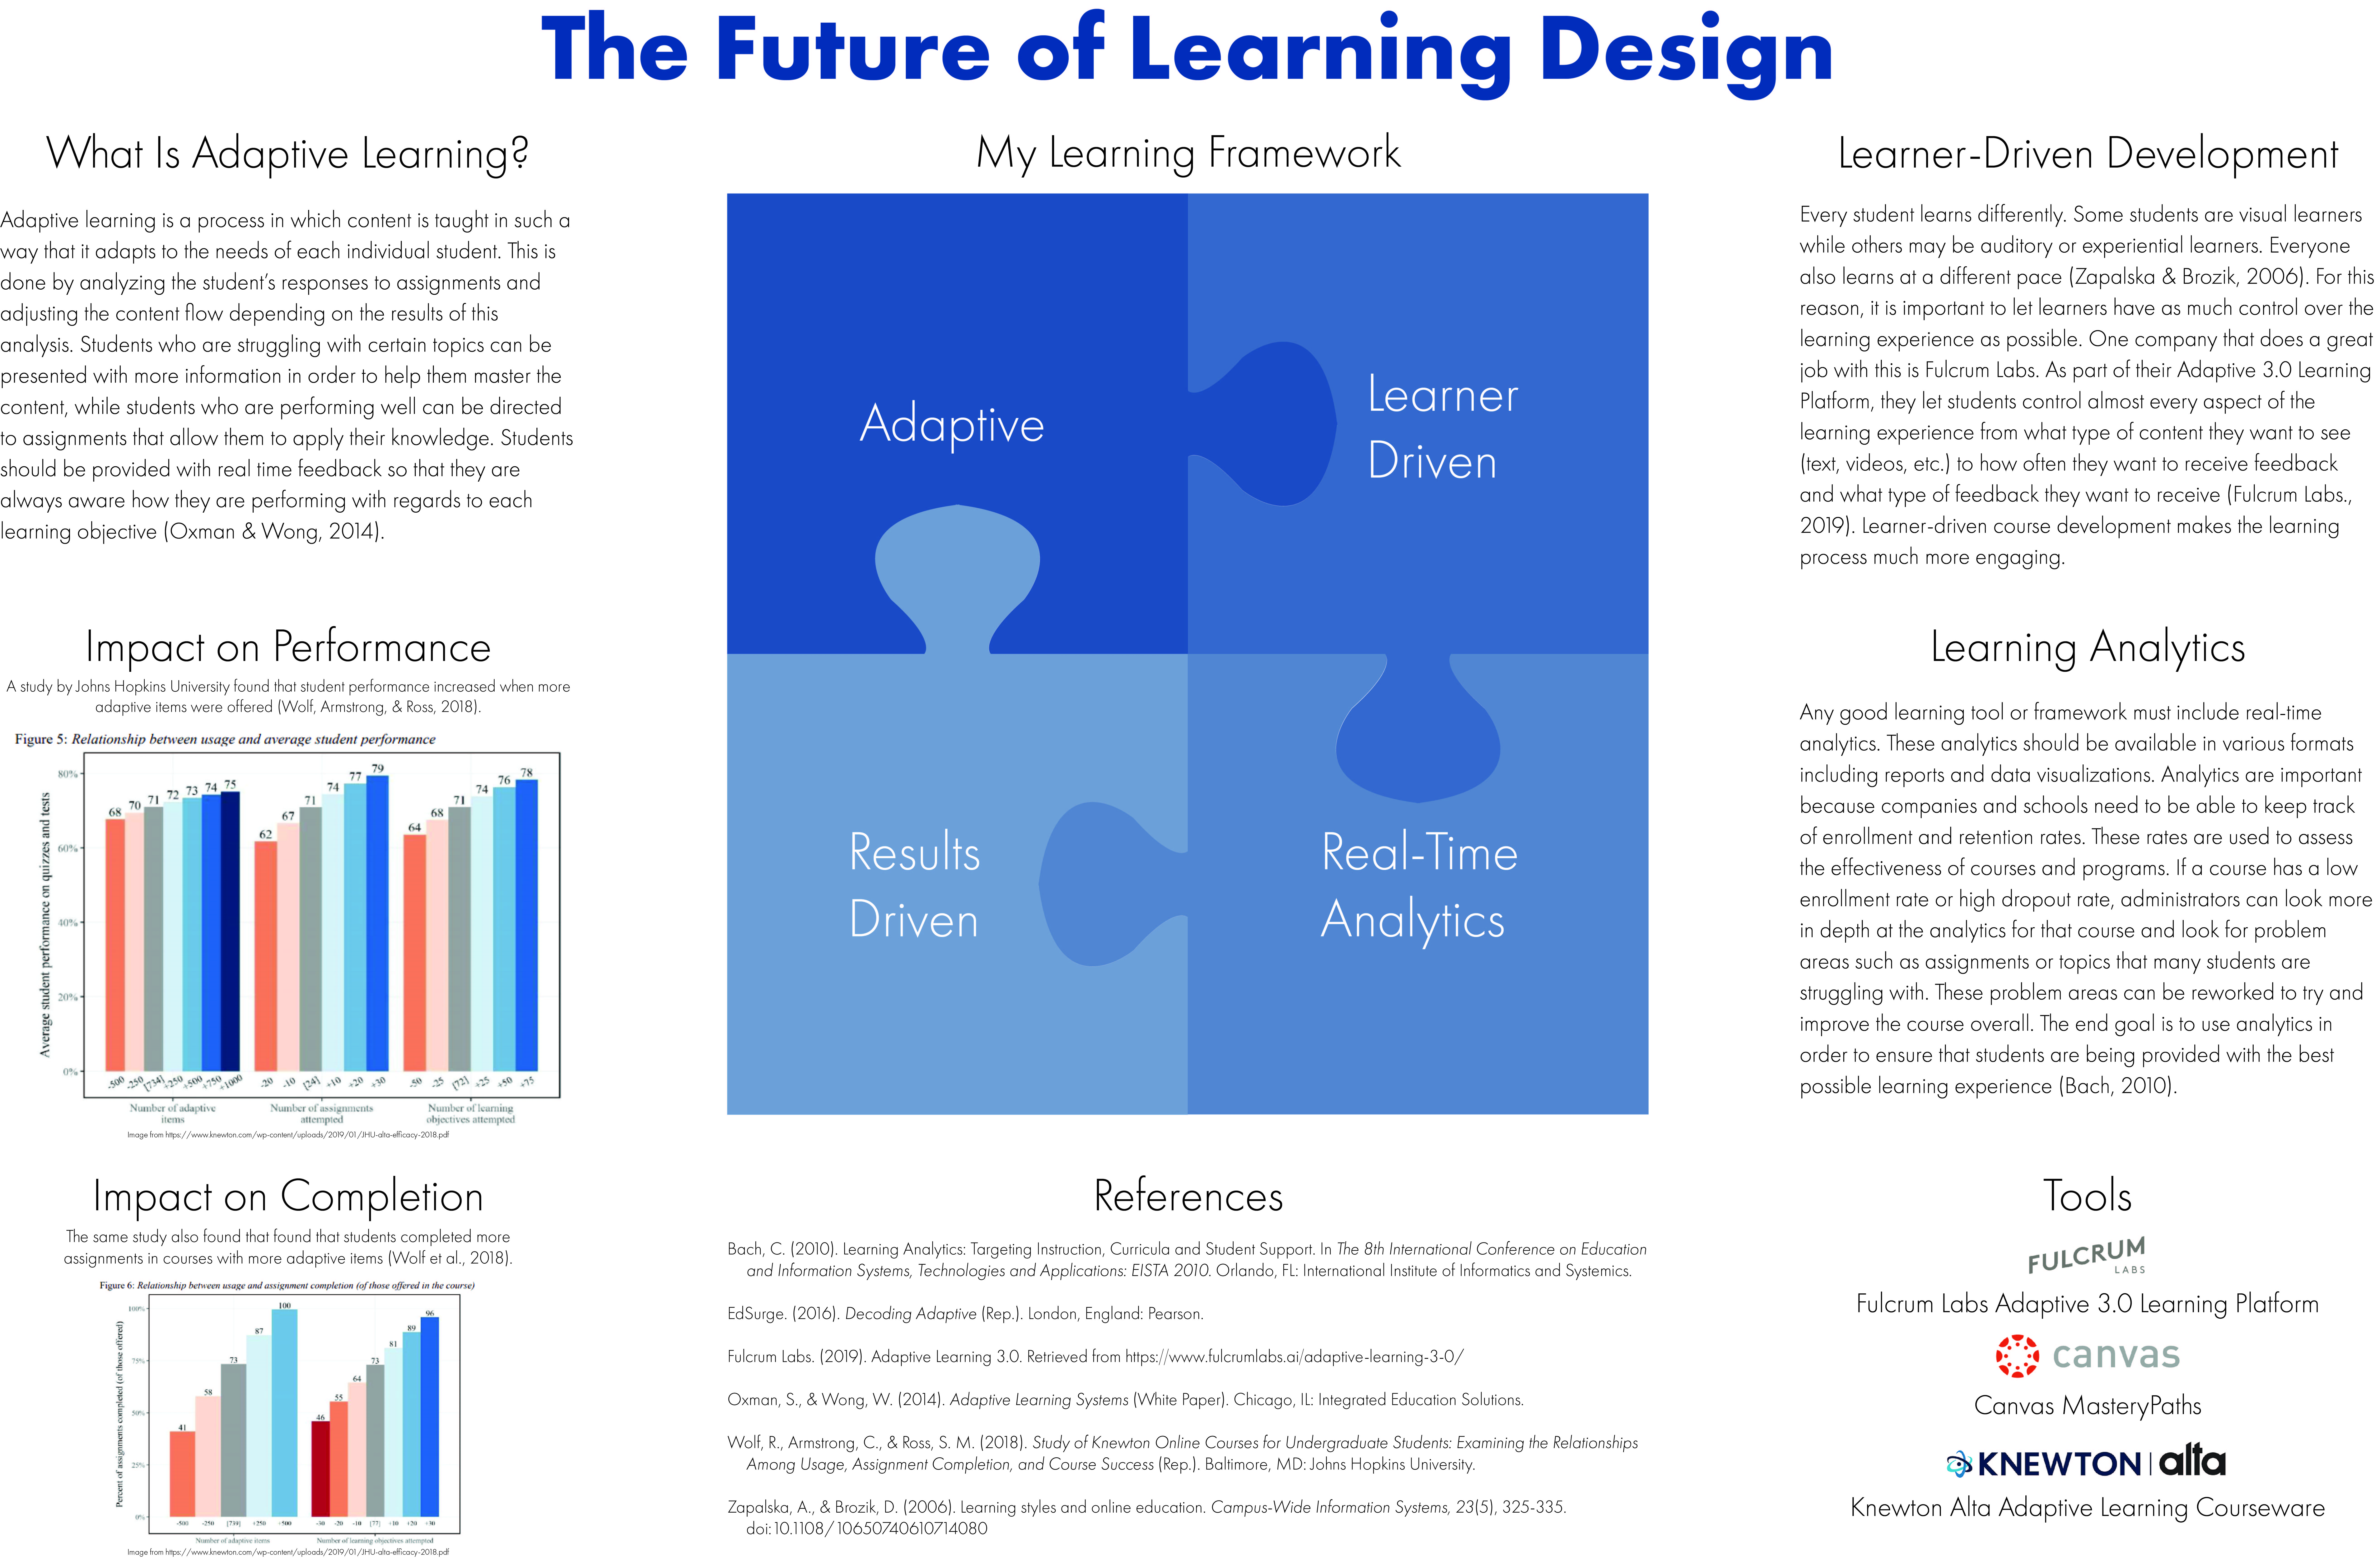 The Future of Learning Design Poster